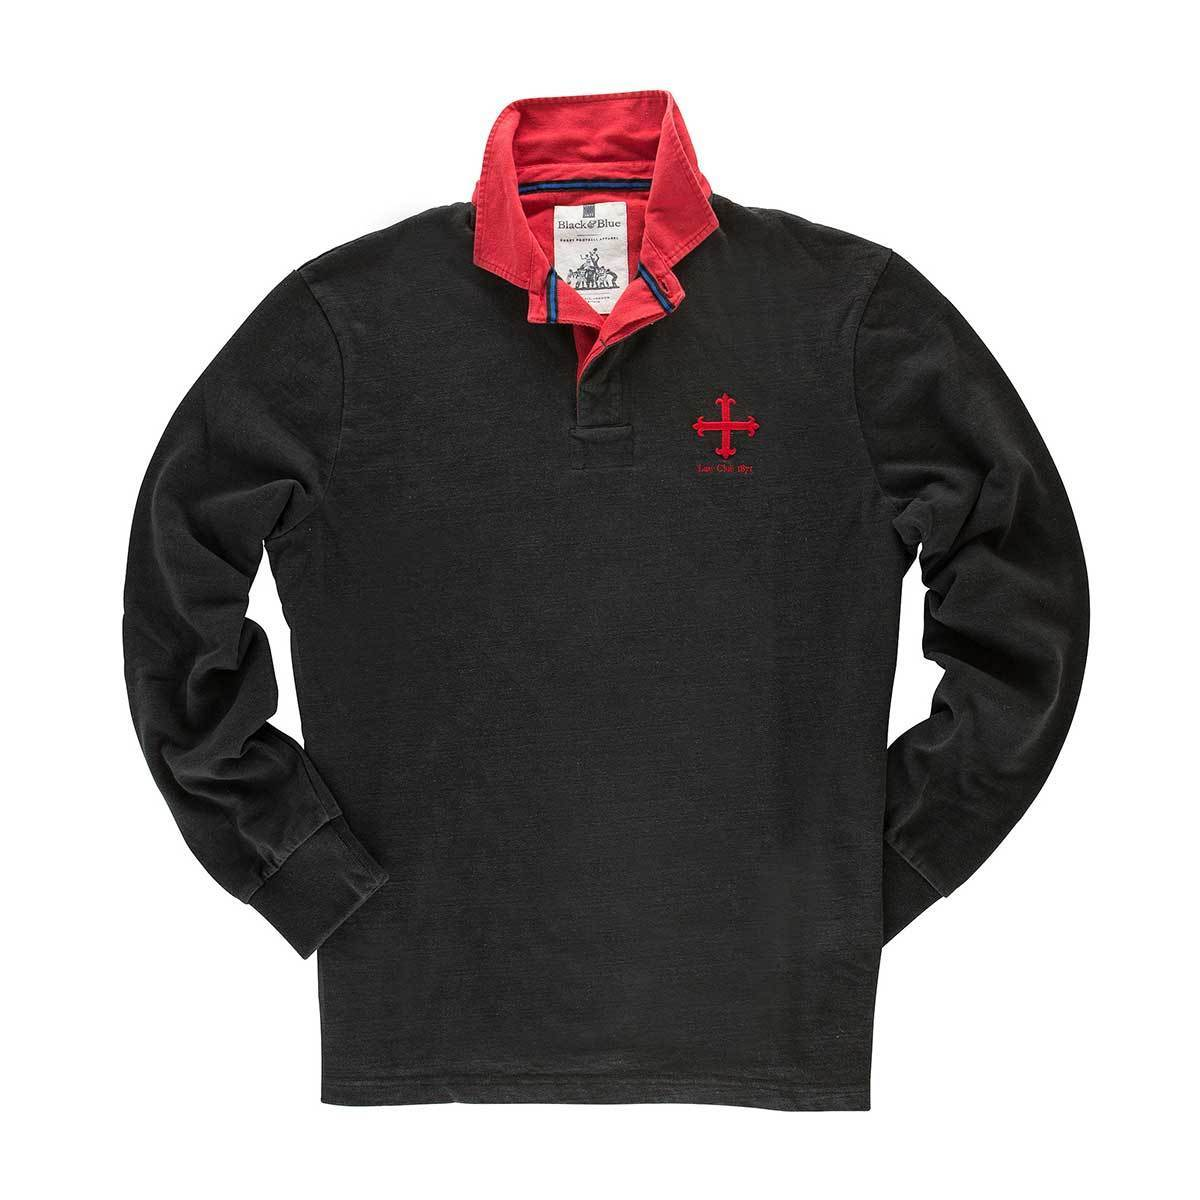 Law Club 1871 Rugby Shirt